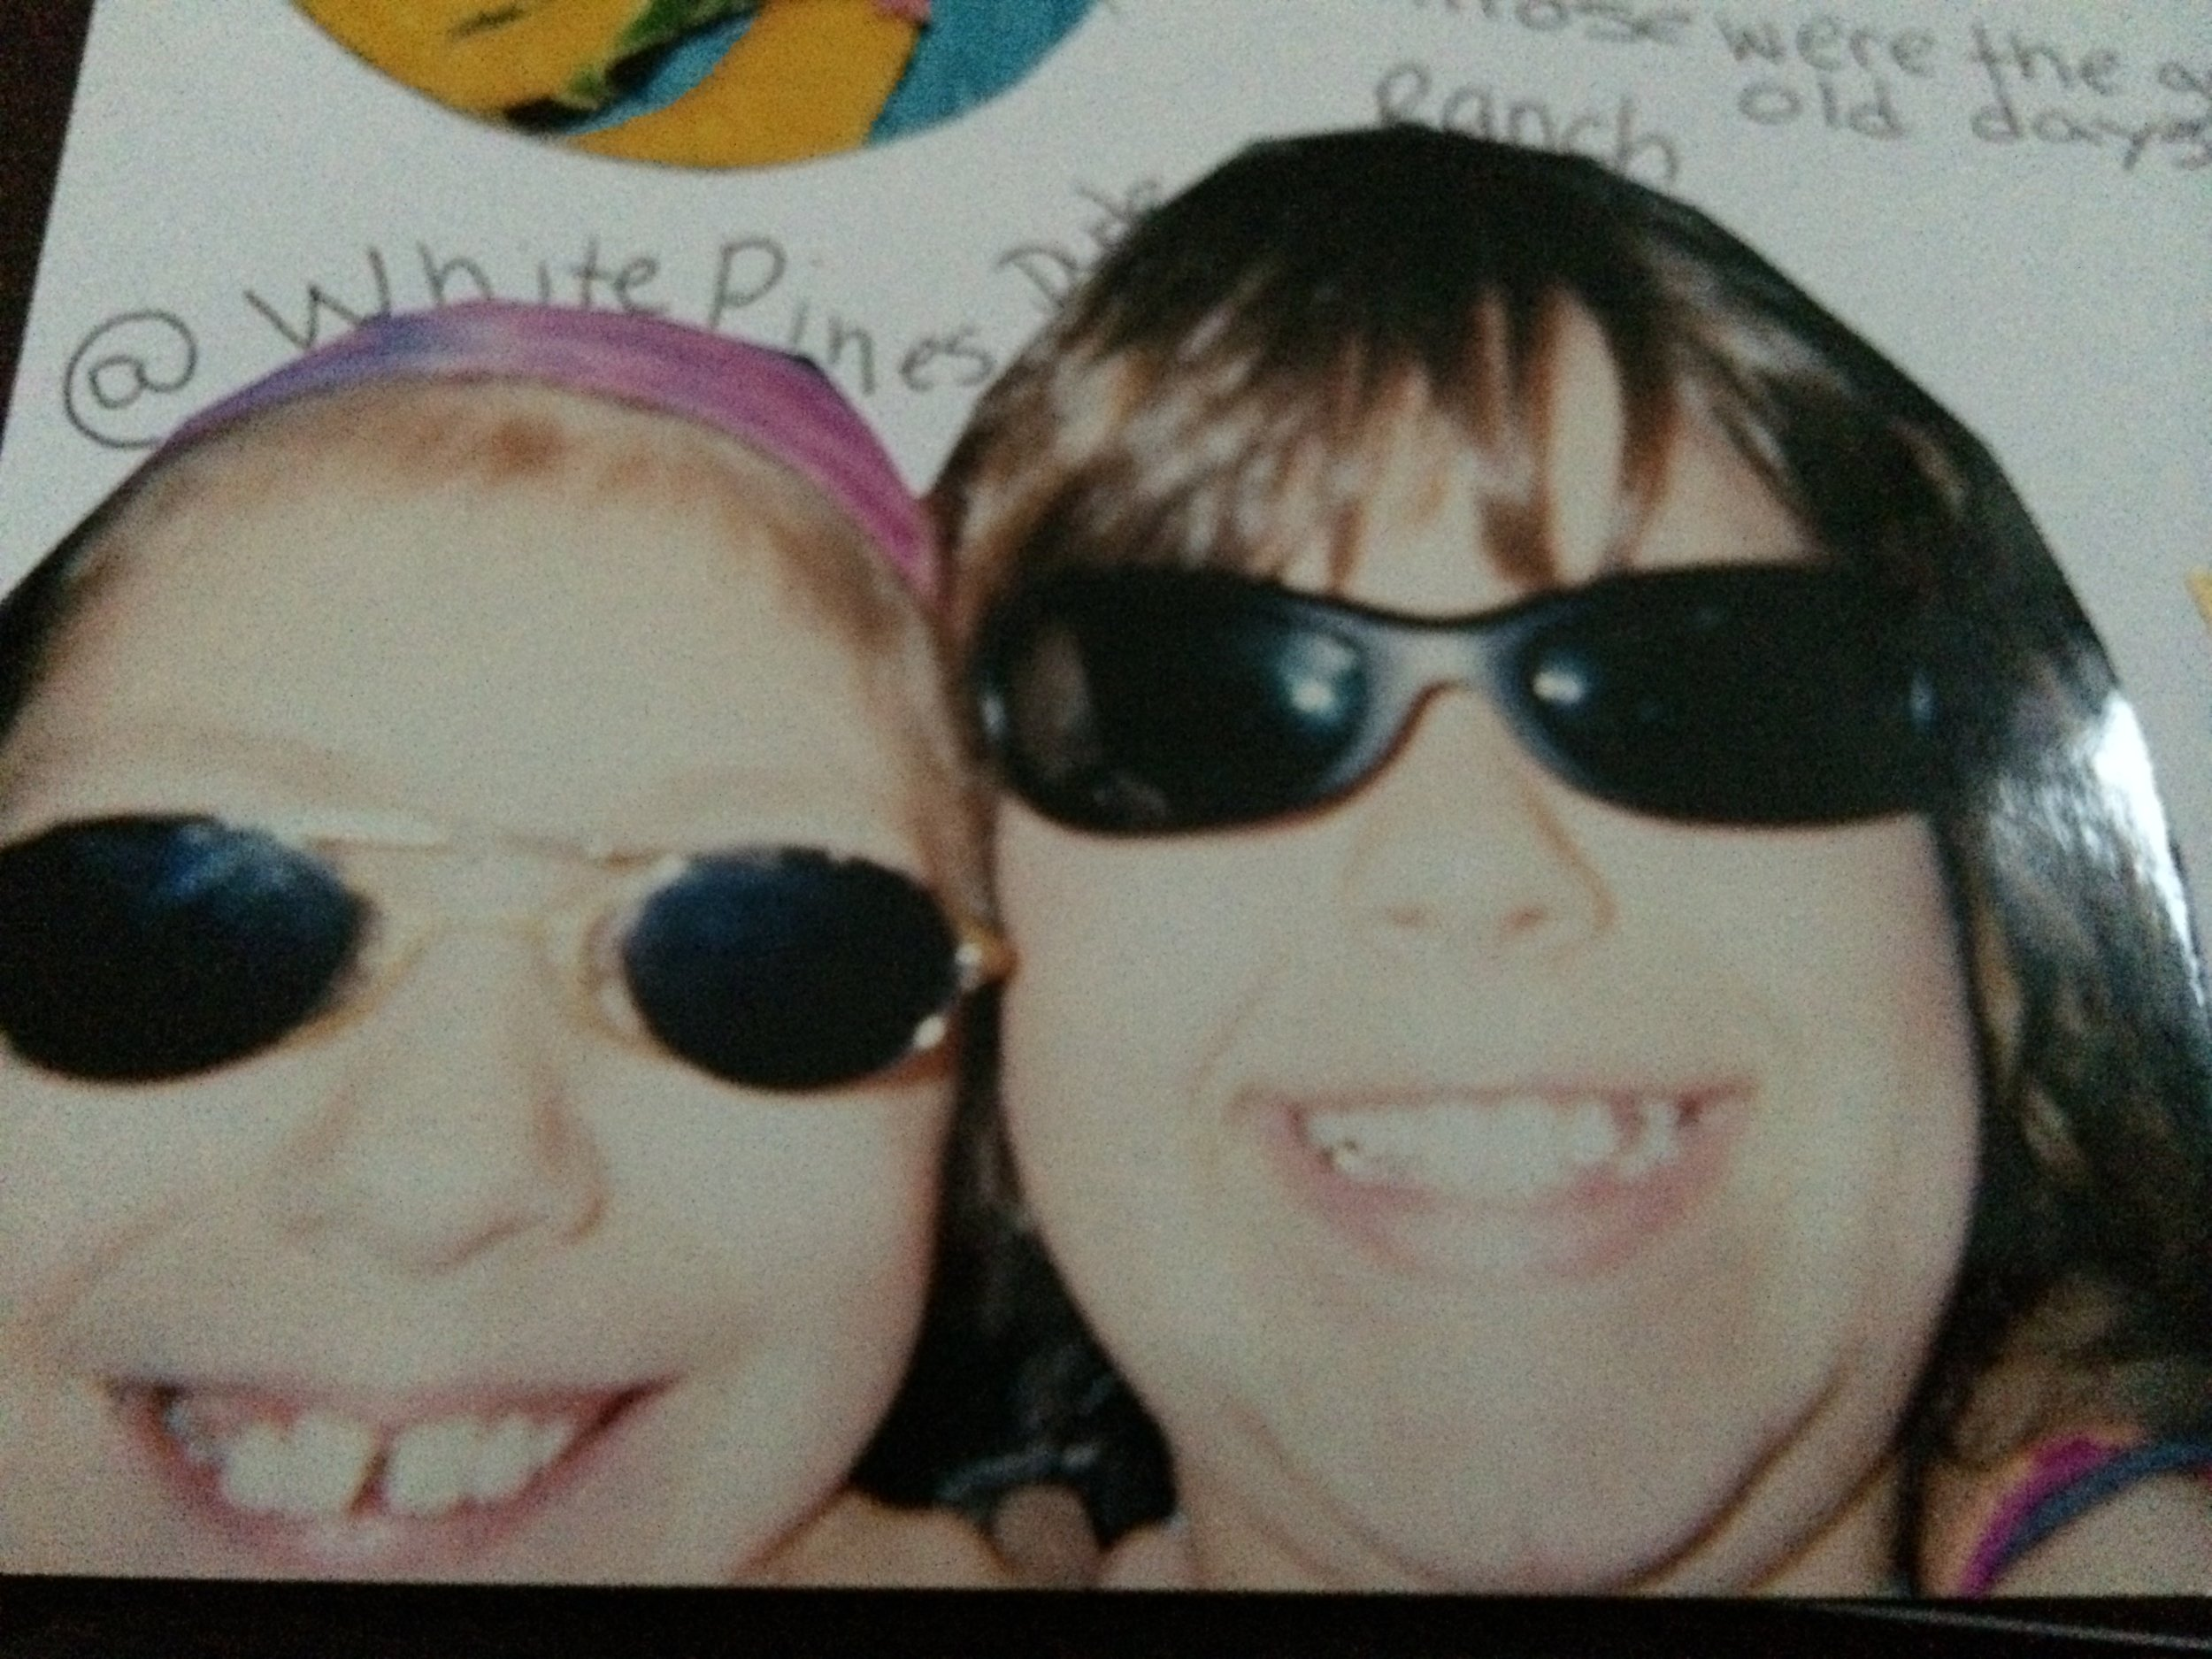 Courtney had cool kid sunglasses. I had weird ones that clipped on over my glasses.